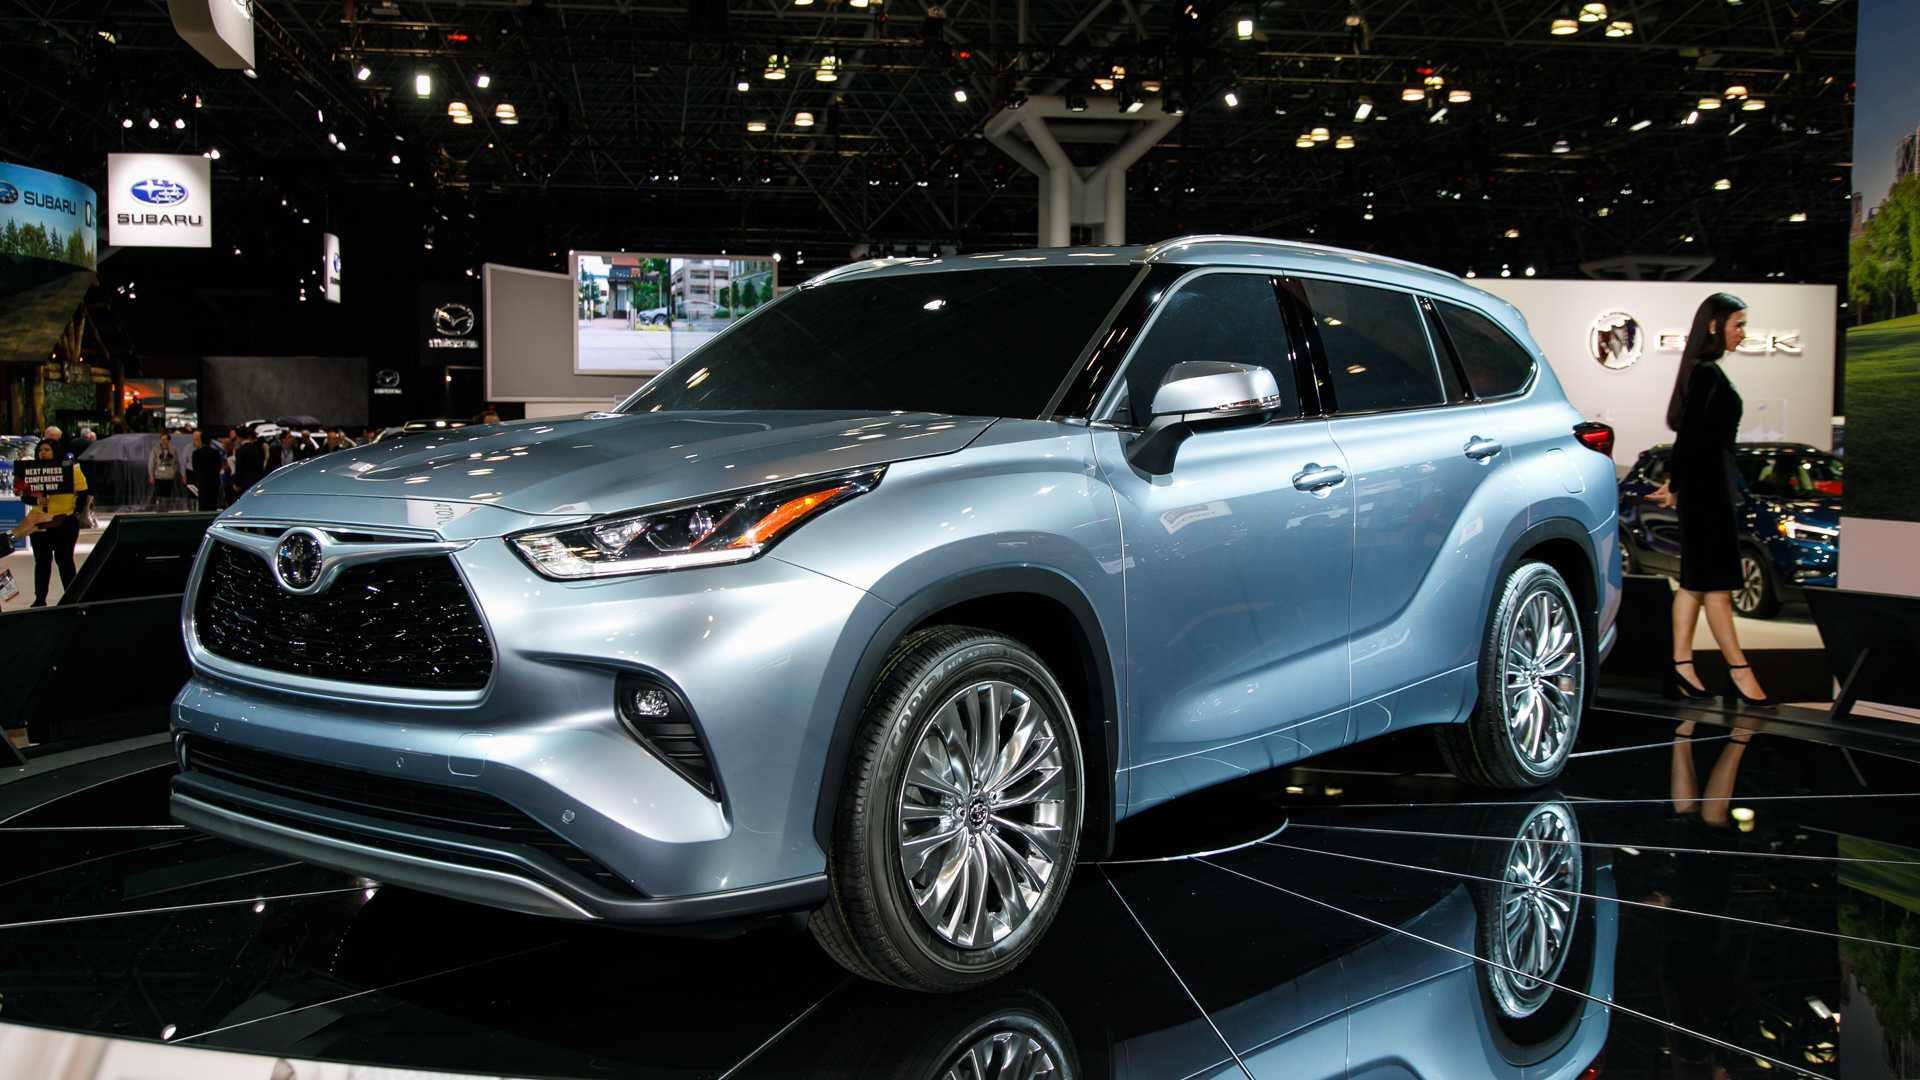 37 Best Review Toyota Kluger New Model 2020 Spy Shoot for Toyota Kluger New Model 2020